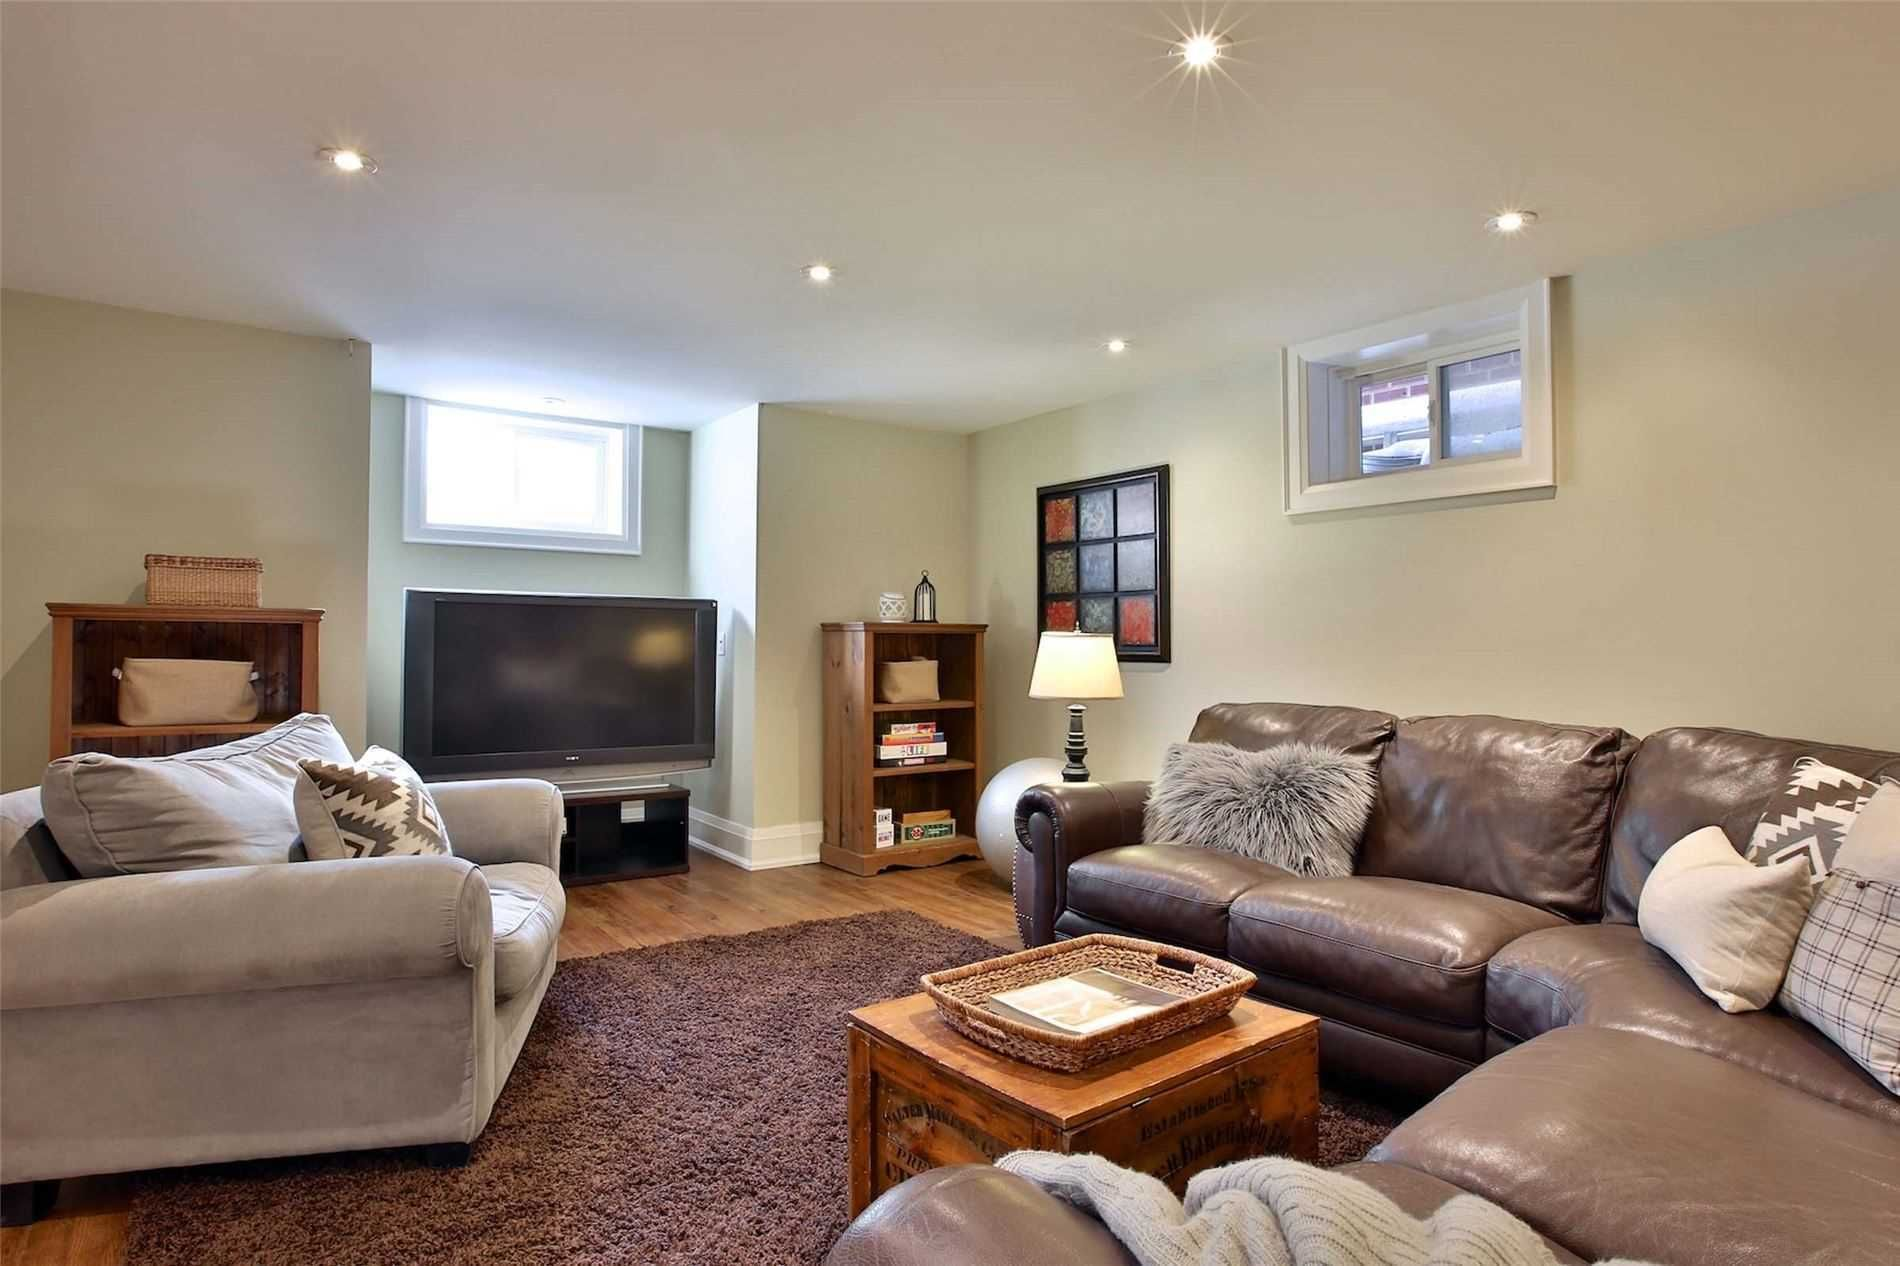 Photo 17: Photos: 181 W Glengrove Avenue in Toronto: Lawrence Park South House (2-Storey) for sale (Toronto C04)  : MLS®# C4633543